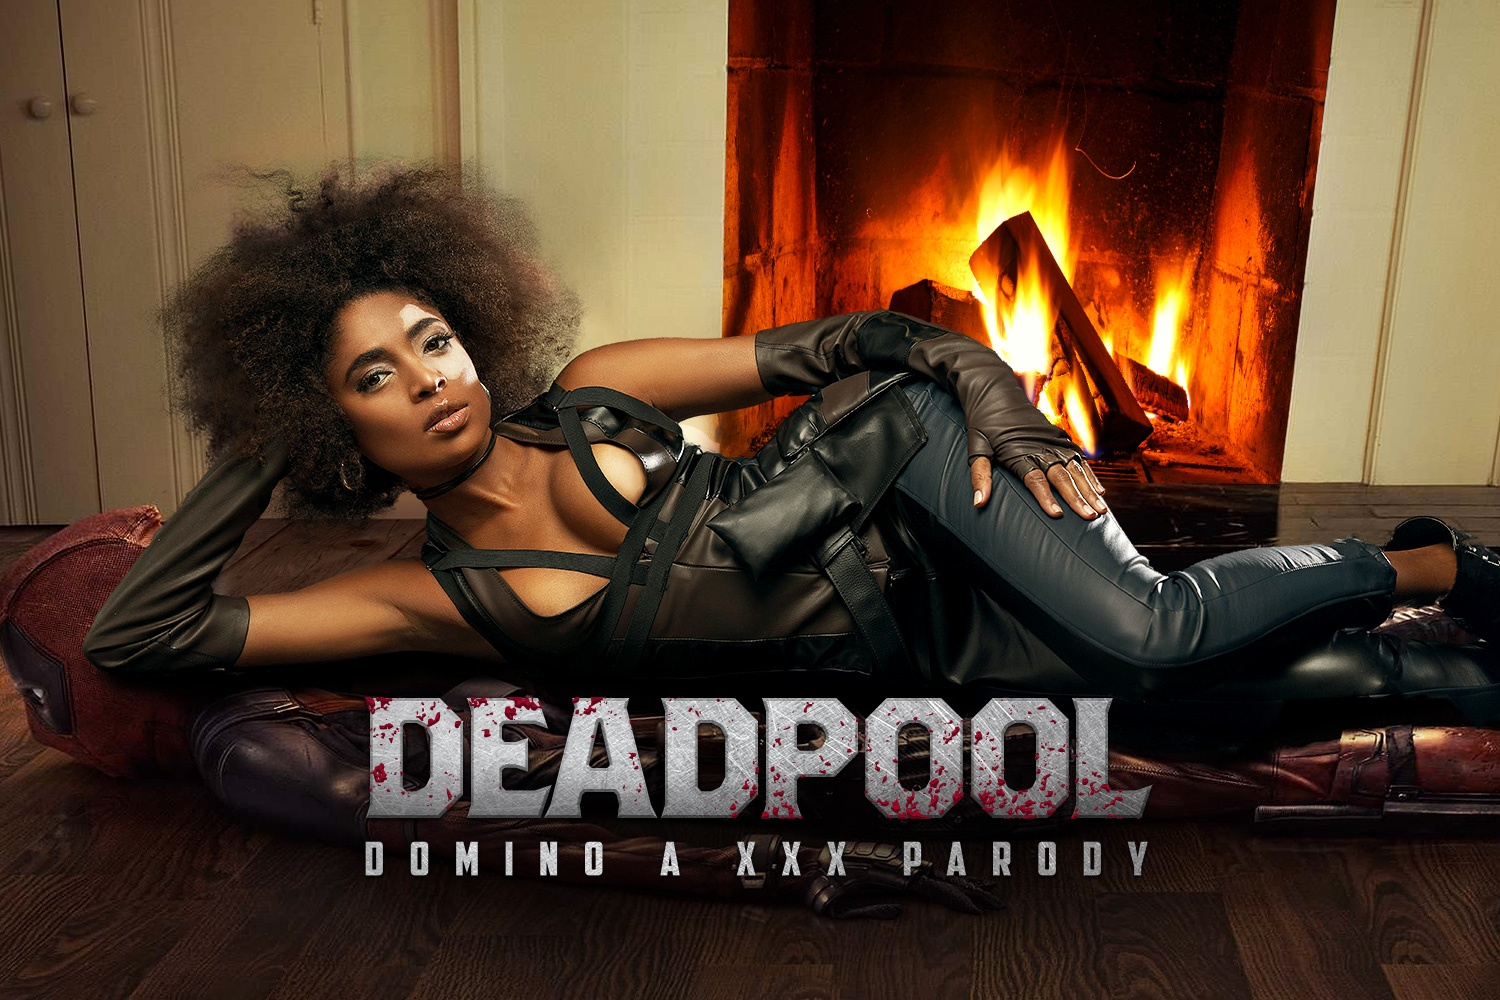 Deadpool: Domino A XXX Parody Luna Corazon